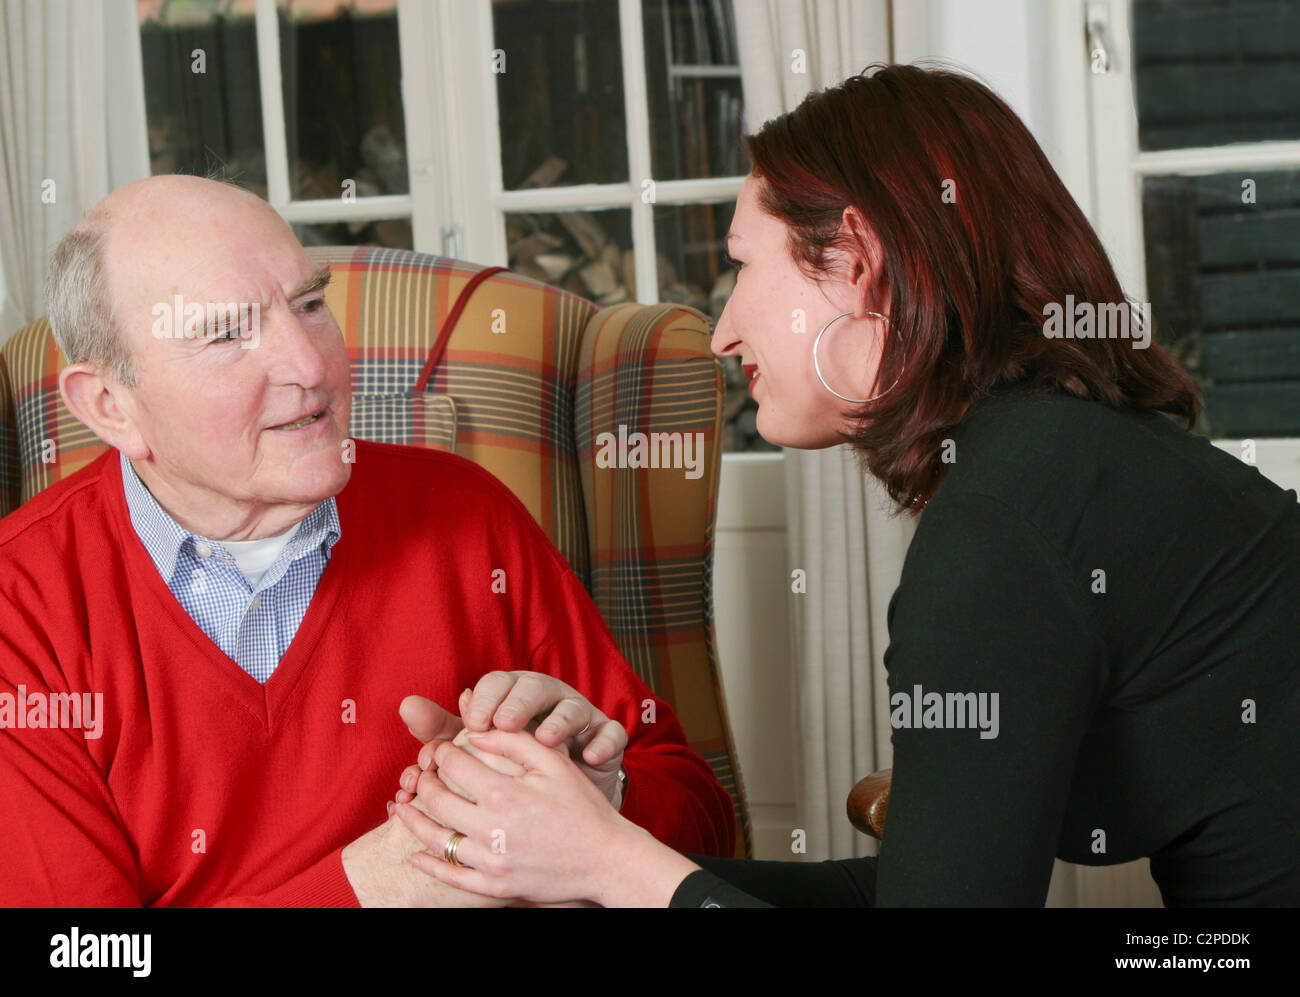 Woman looking after man older or voluntary worker - Stock Image